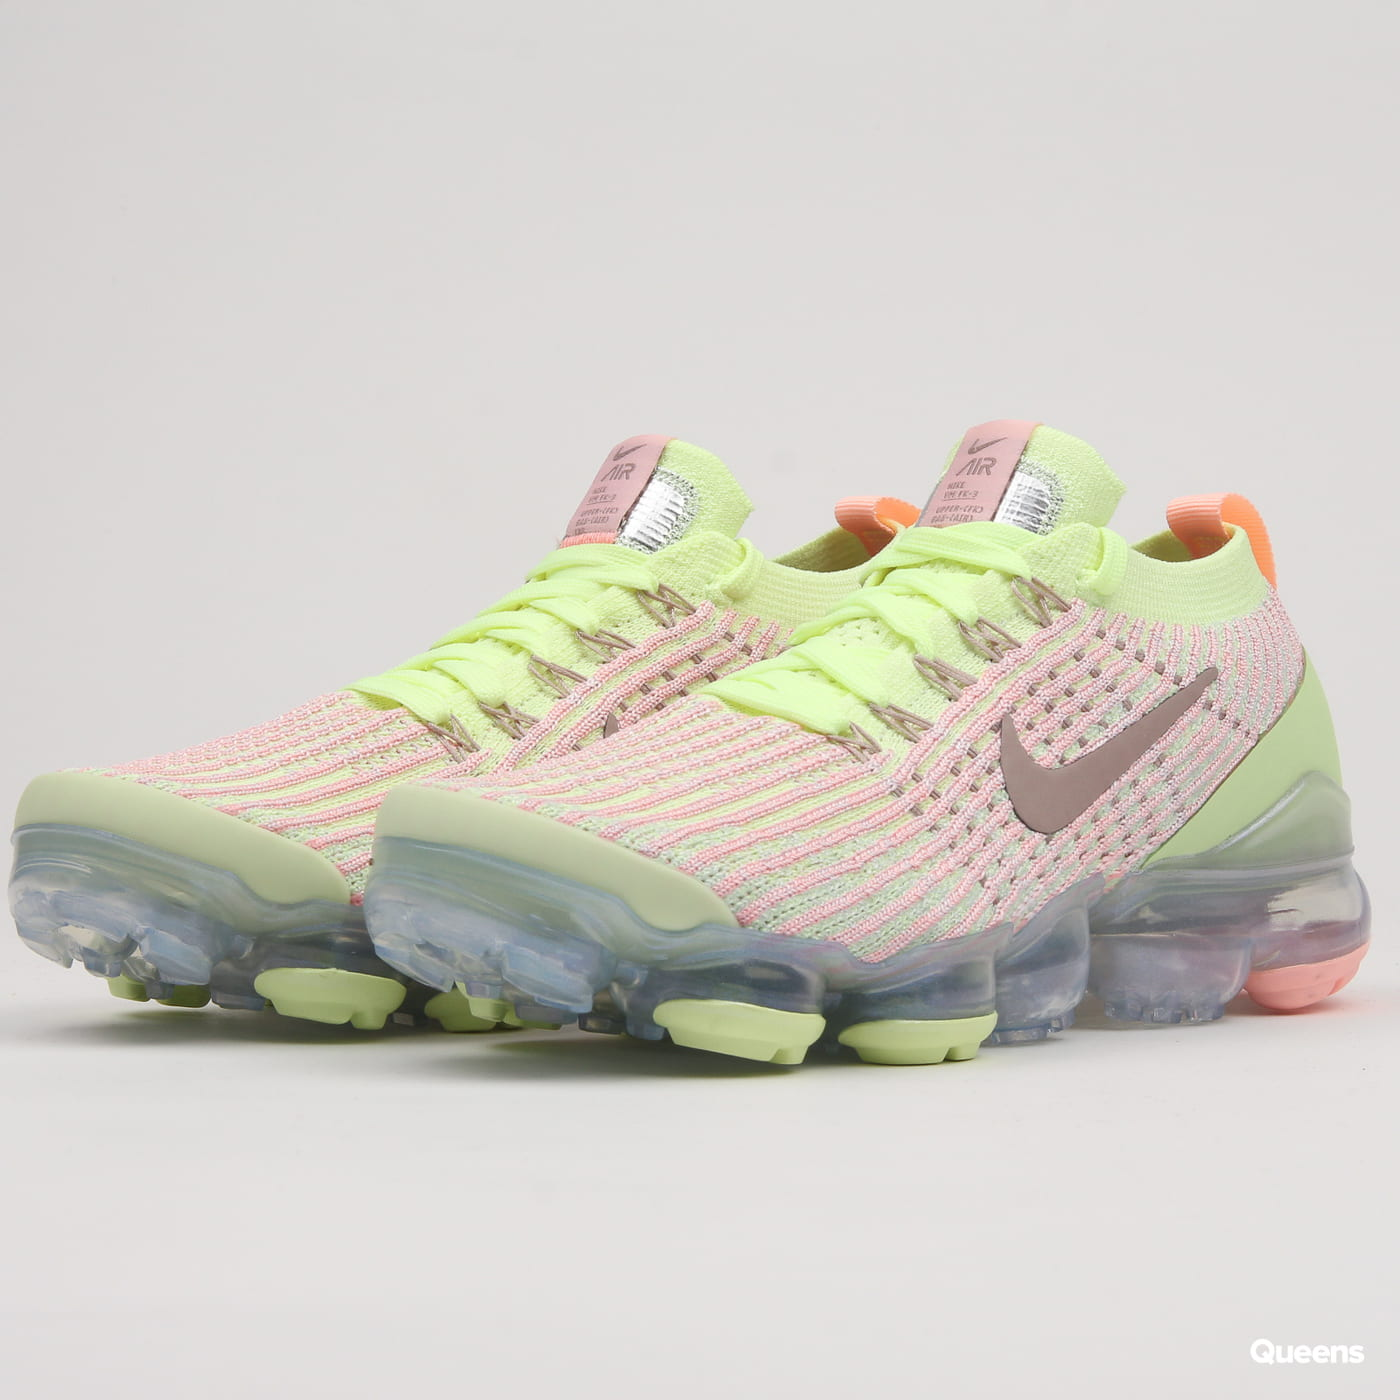 40271cacf6e Nike W Air Vapormax Flyknit 3 barely volt / diffused taupe (AJ6910-700) –  Queens 💚